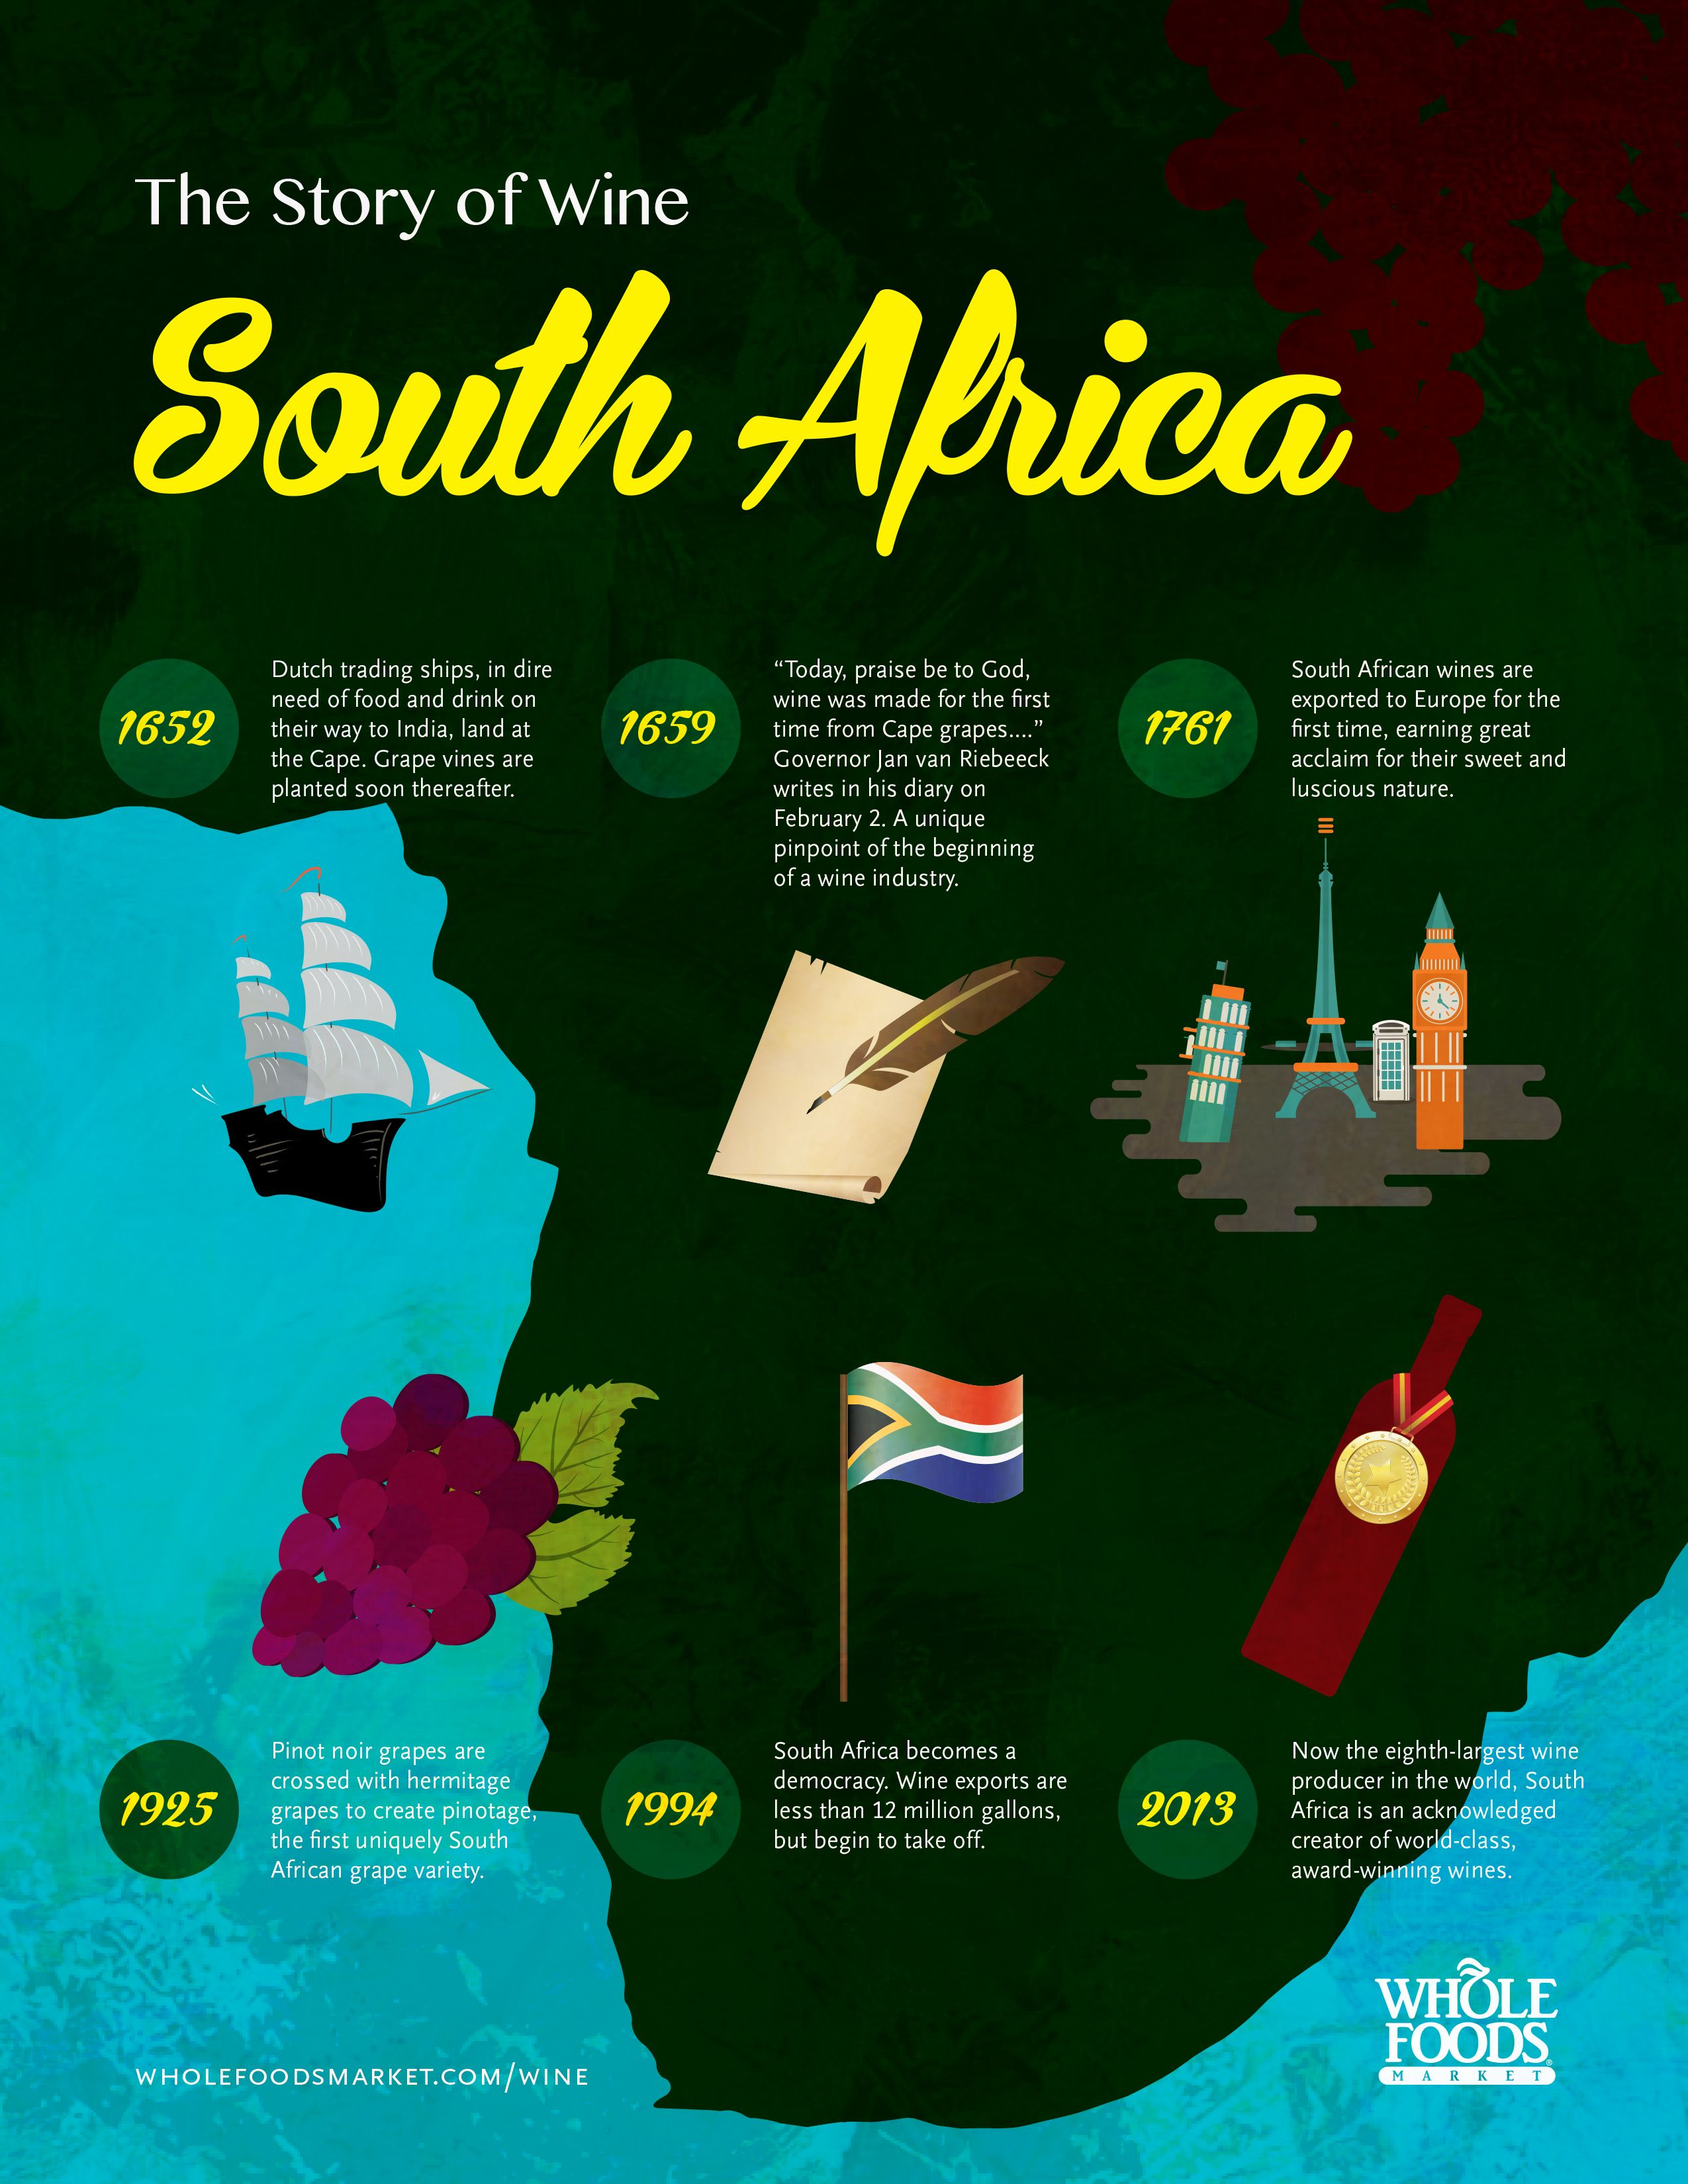 a history of the development of south africa Dantjie jagman, one of the collective of farm labourers who own new beginnings  wine farm near paarl in the western cape the workers.